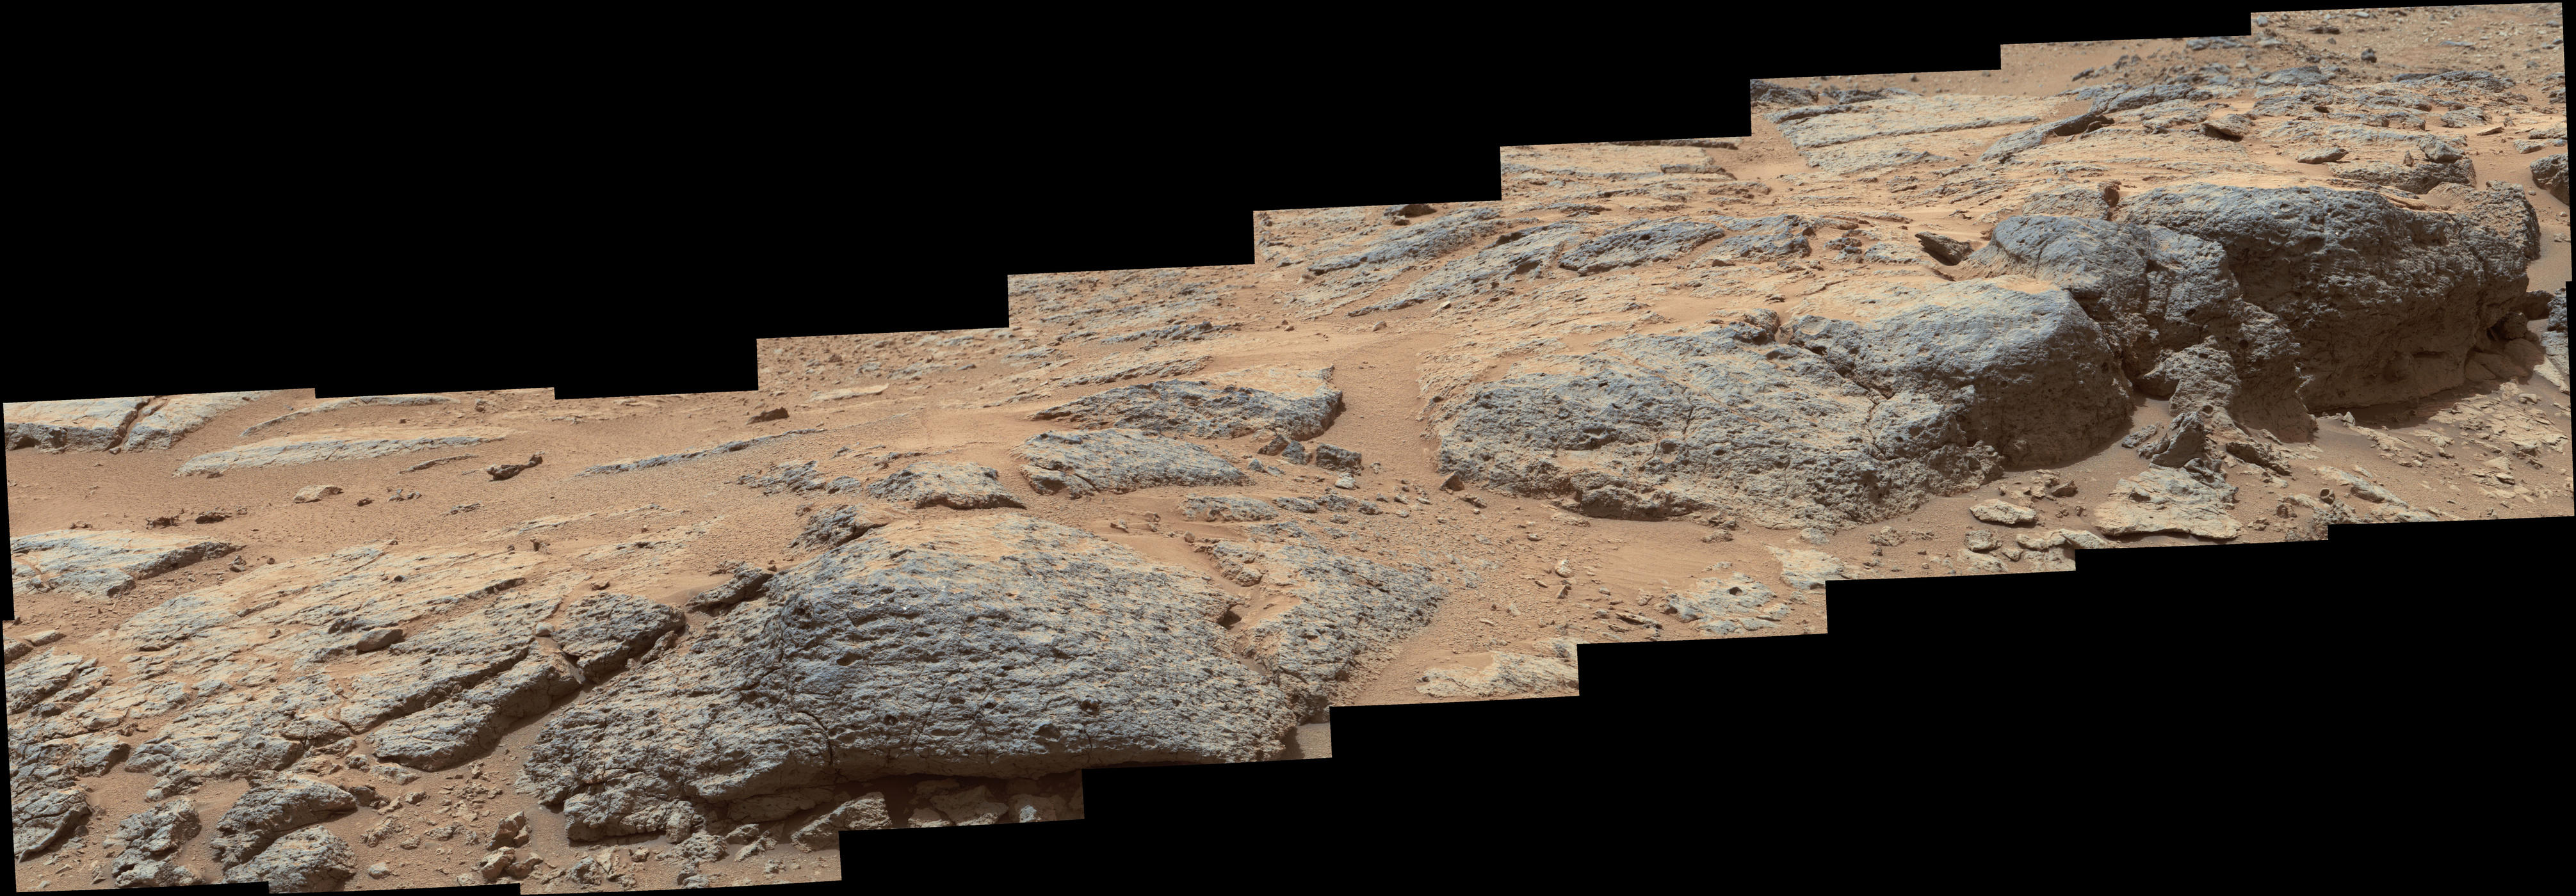 "This mosaic view from the Mast Camera (Mastcam) on NASA's Mars rover Curiosity shows textural characteristics and shapes of an outcrop called ""Point Lake."""